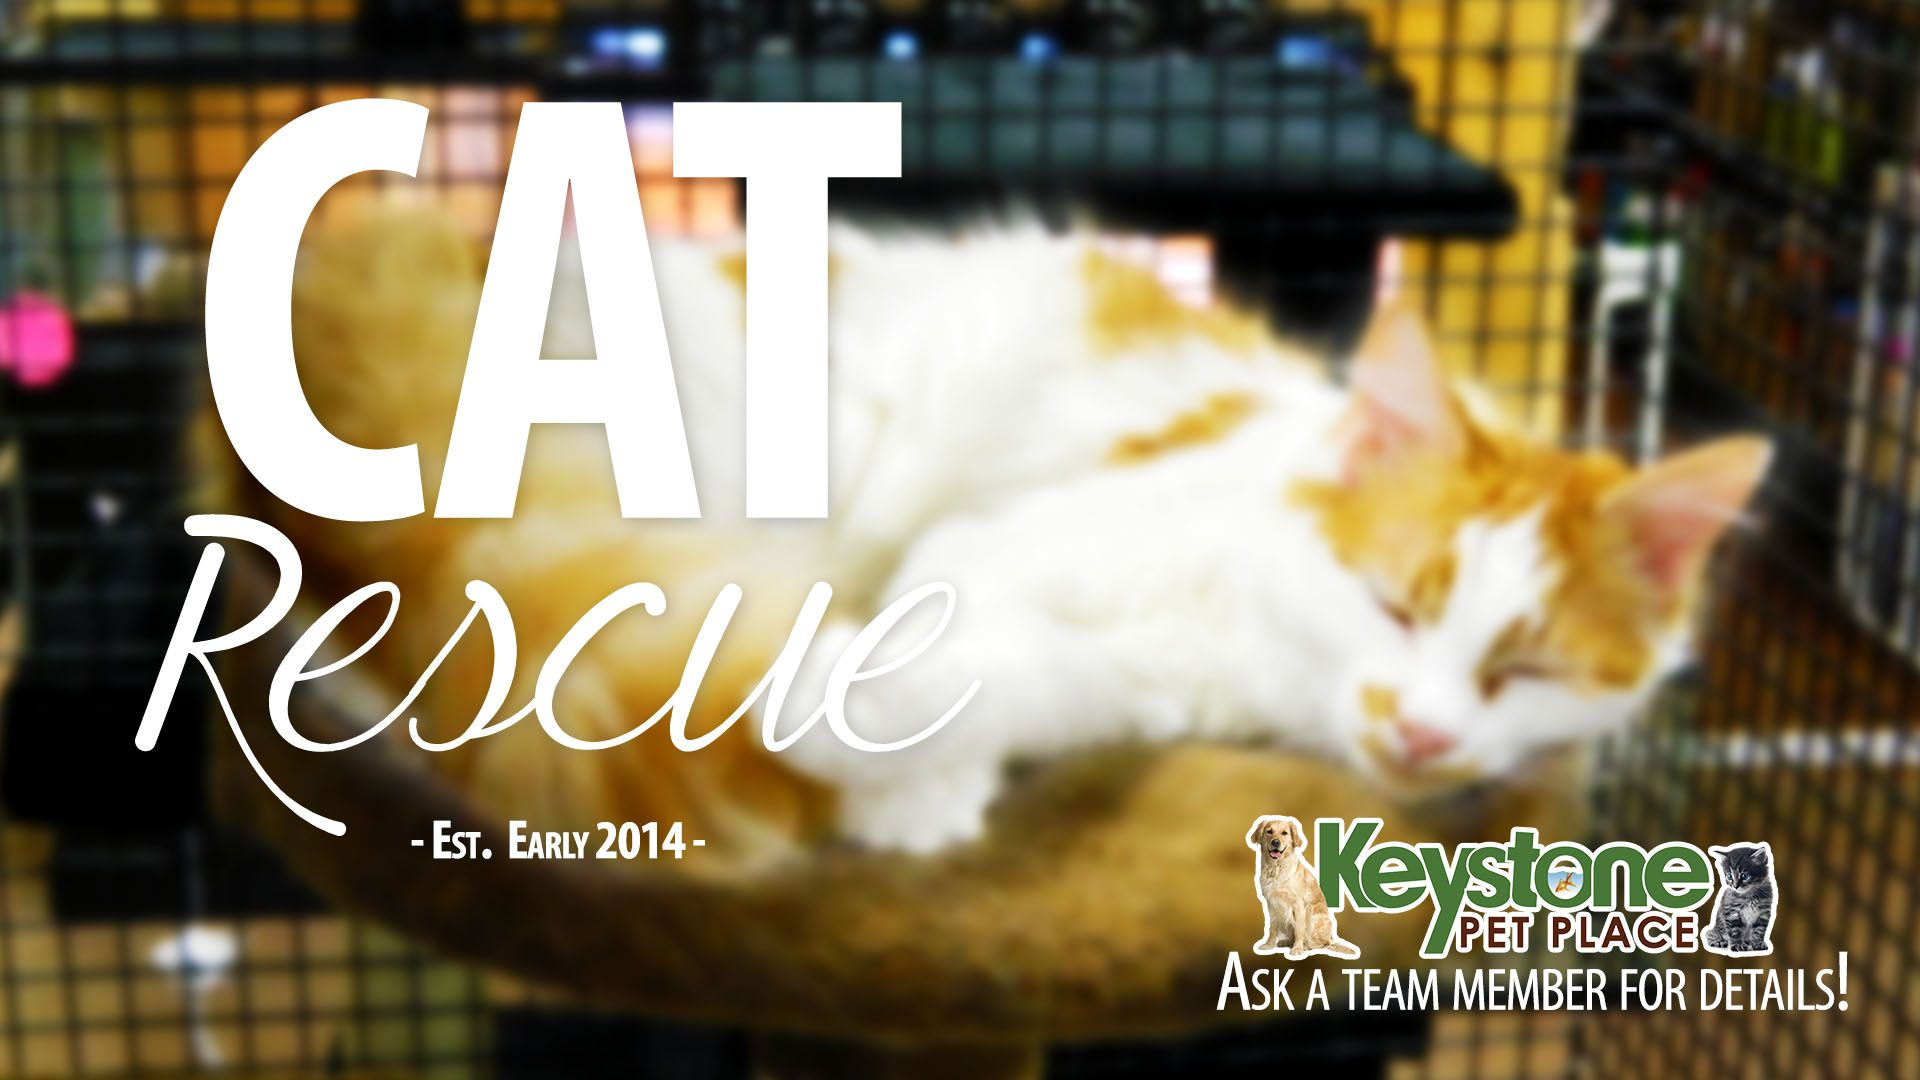 Cat Rescue.  Spayed or neutered and up-to-date on all their shots.  For $90 adopt them and give them a forever home :)